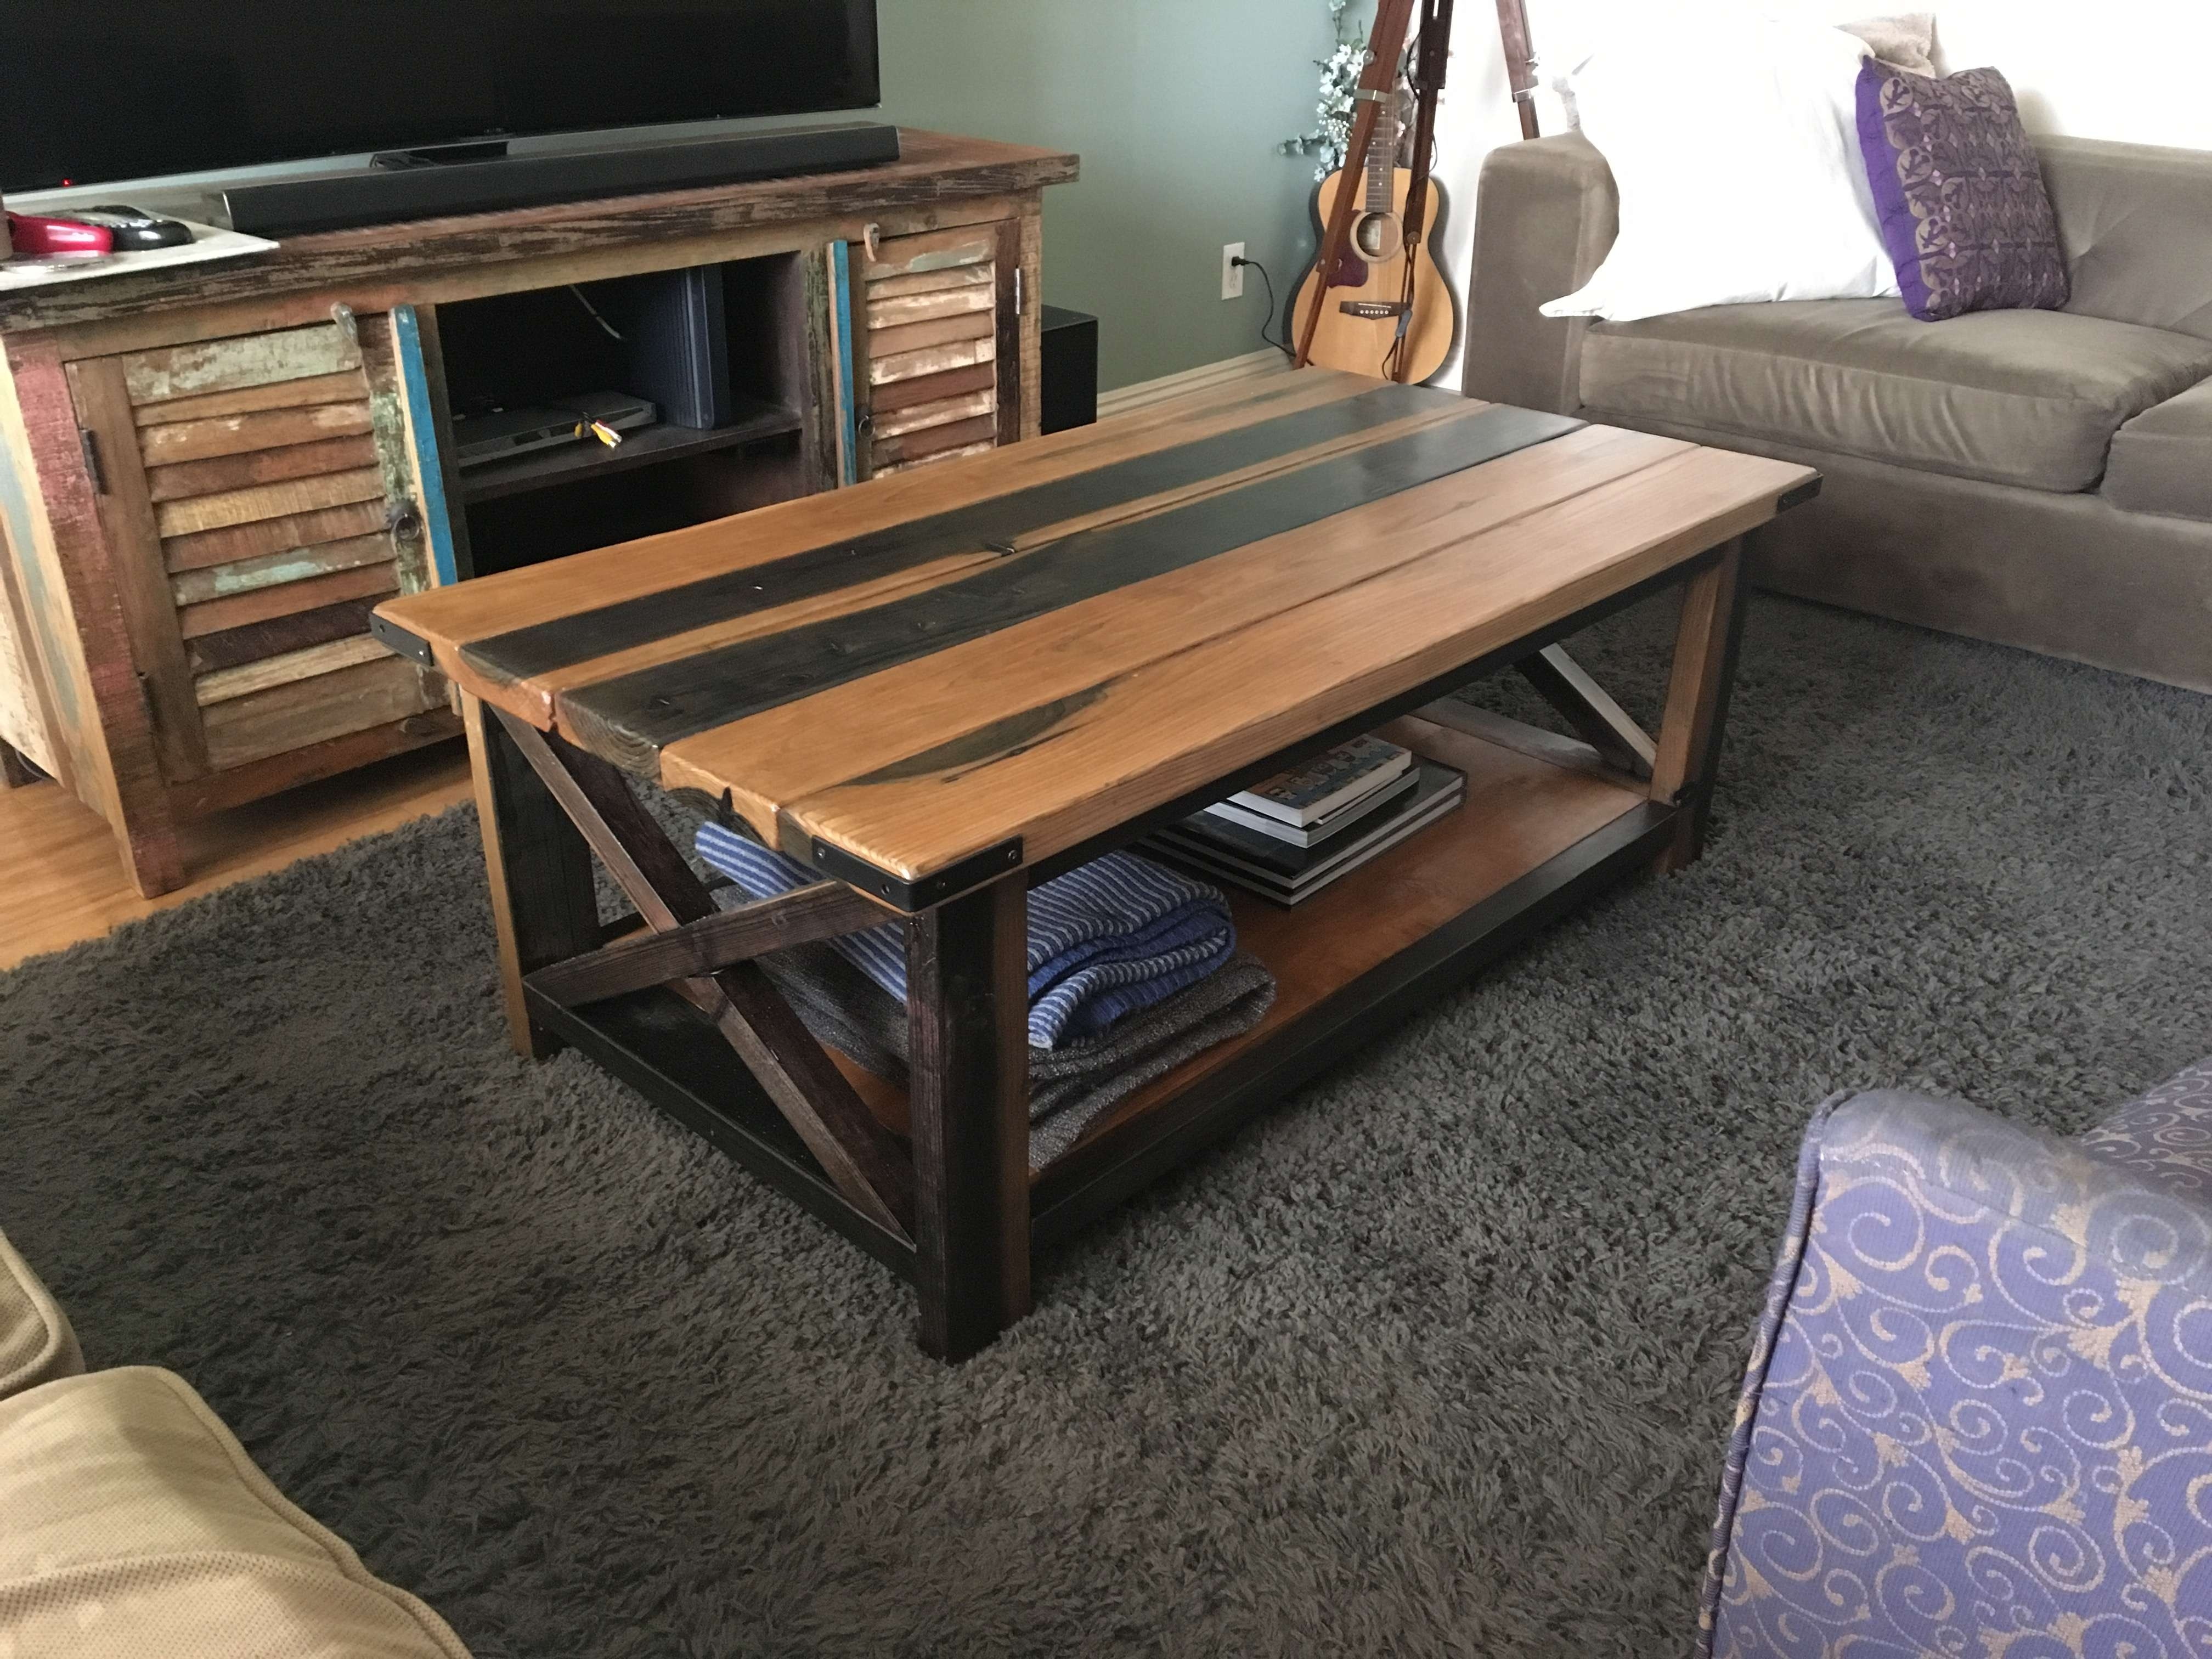 Diy Rustic Coffee Table – Album On Imgur Pertaining To Most Recent Rustic Storage Diy Coffee Tables (View 7 of 20)